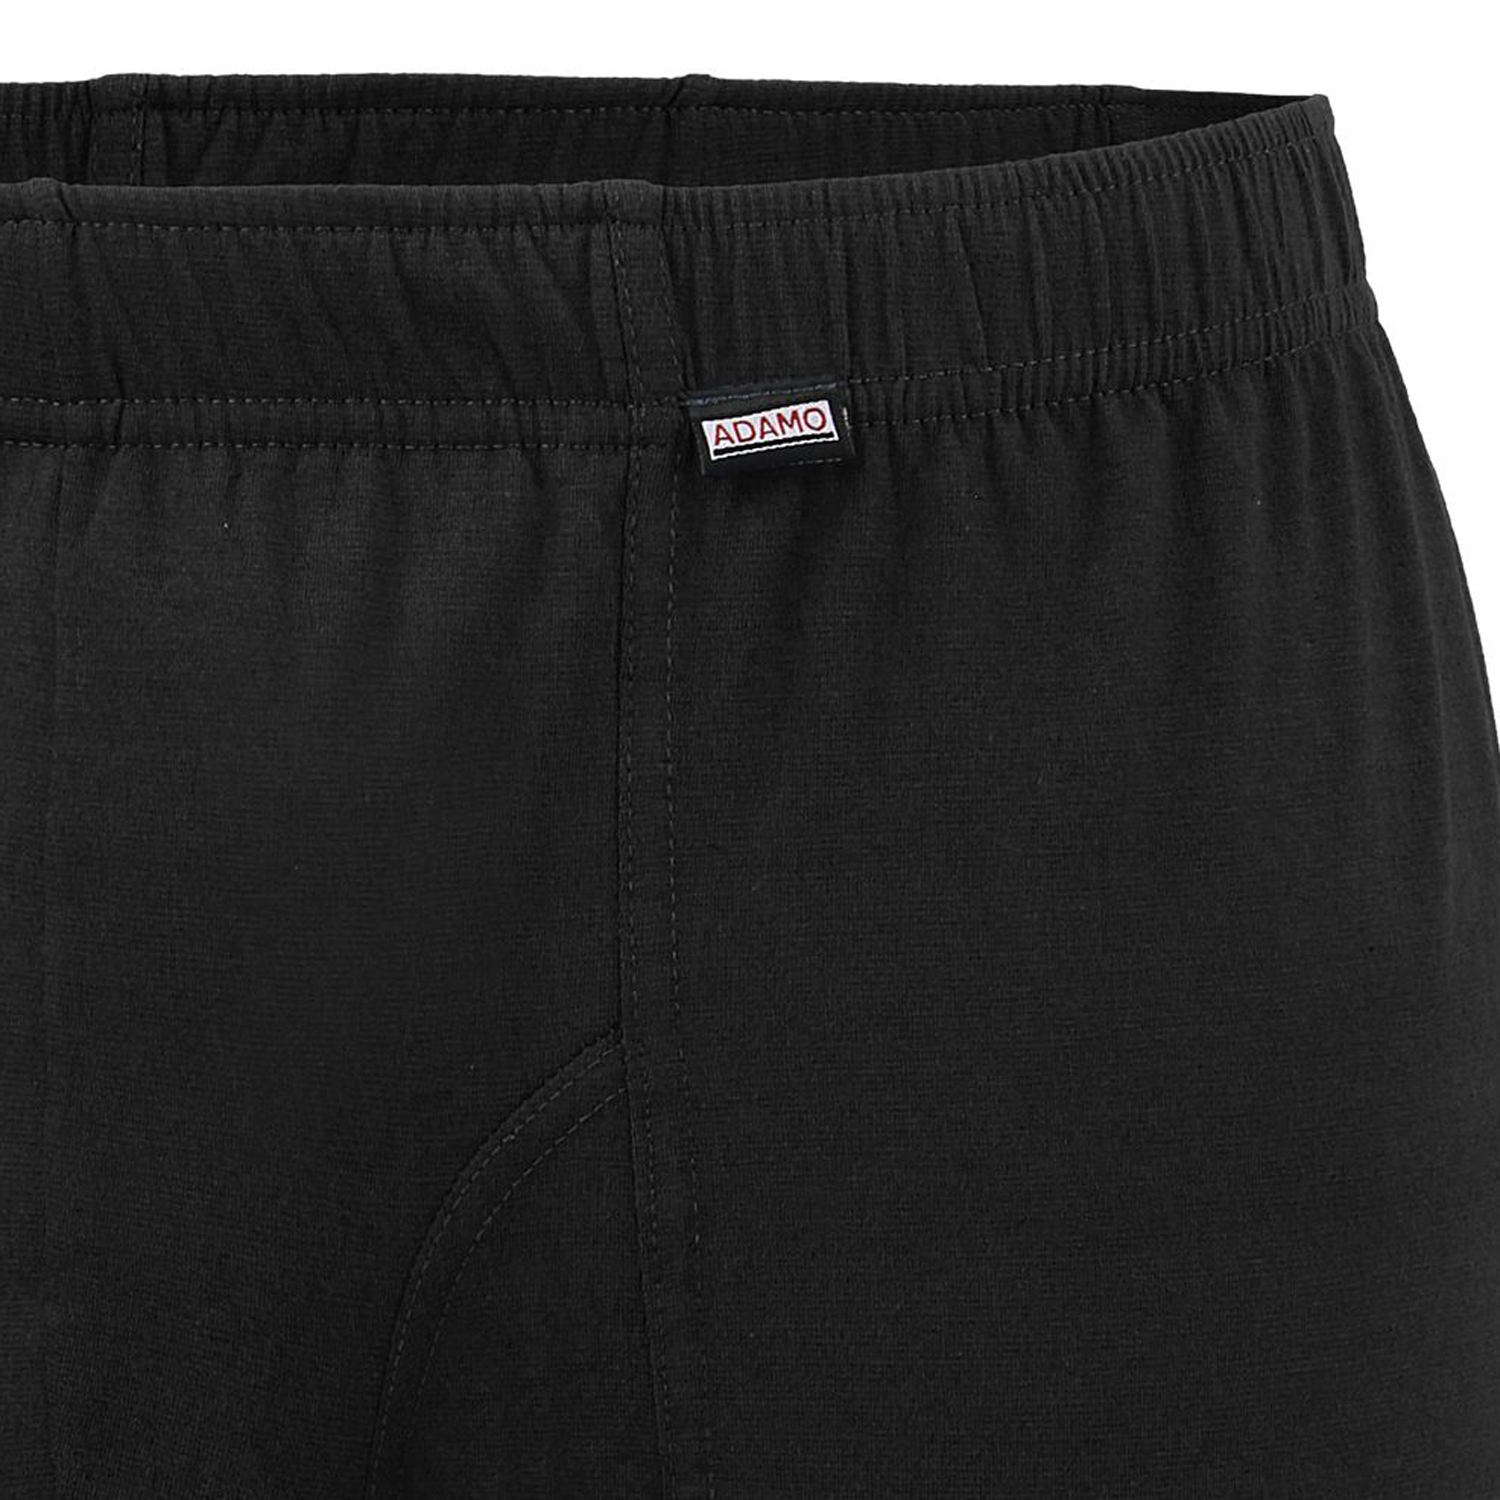 Detail Image to Black double pack JACK maxipants from ADAMO up to plus size 20